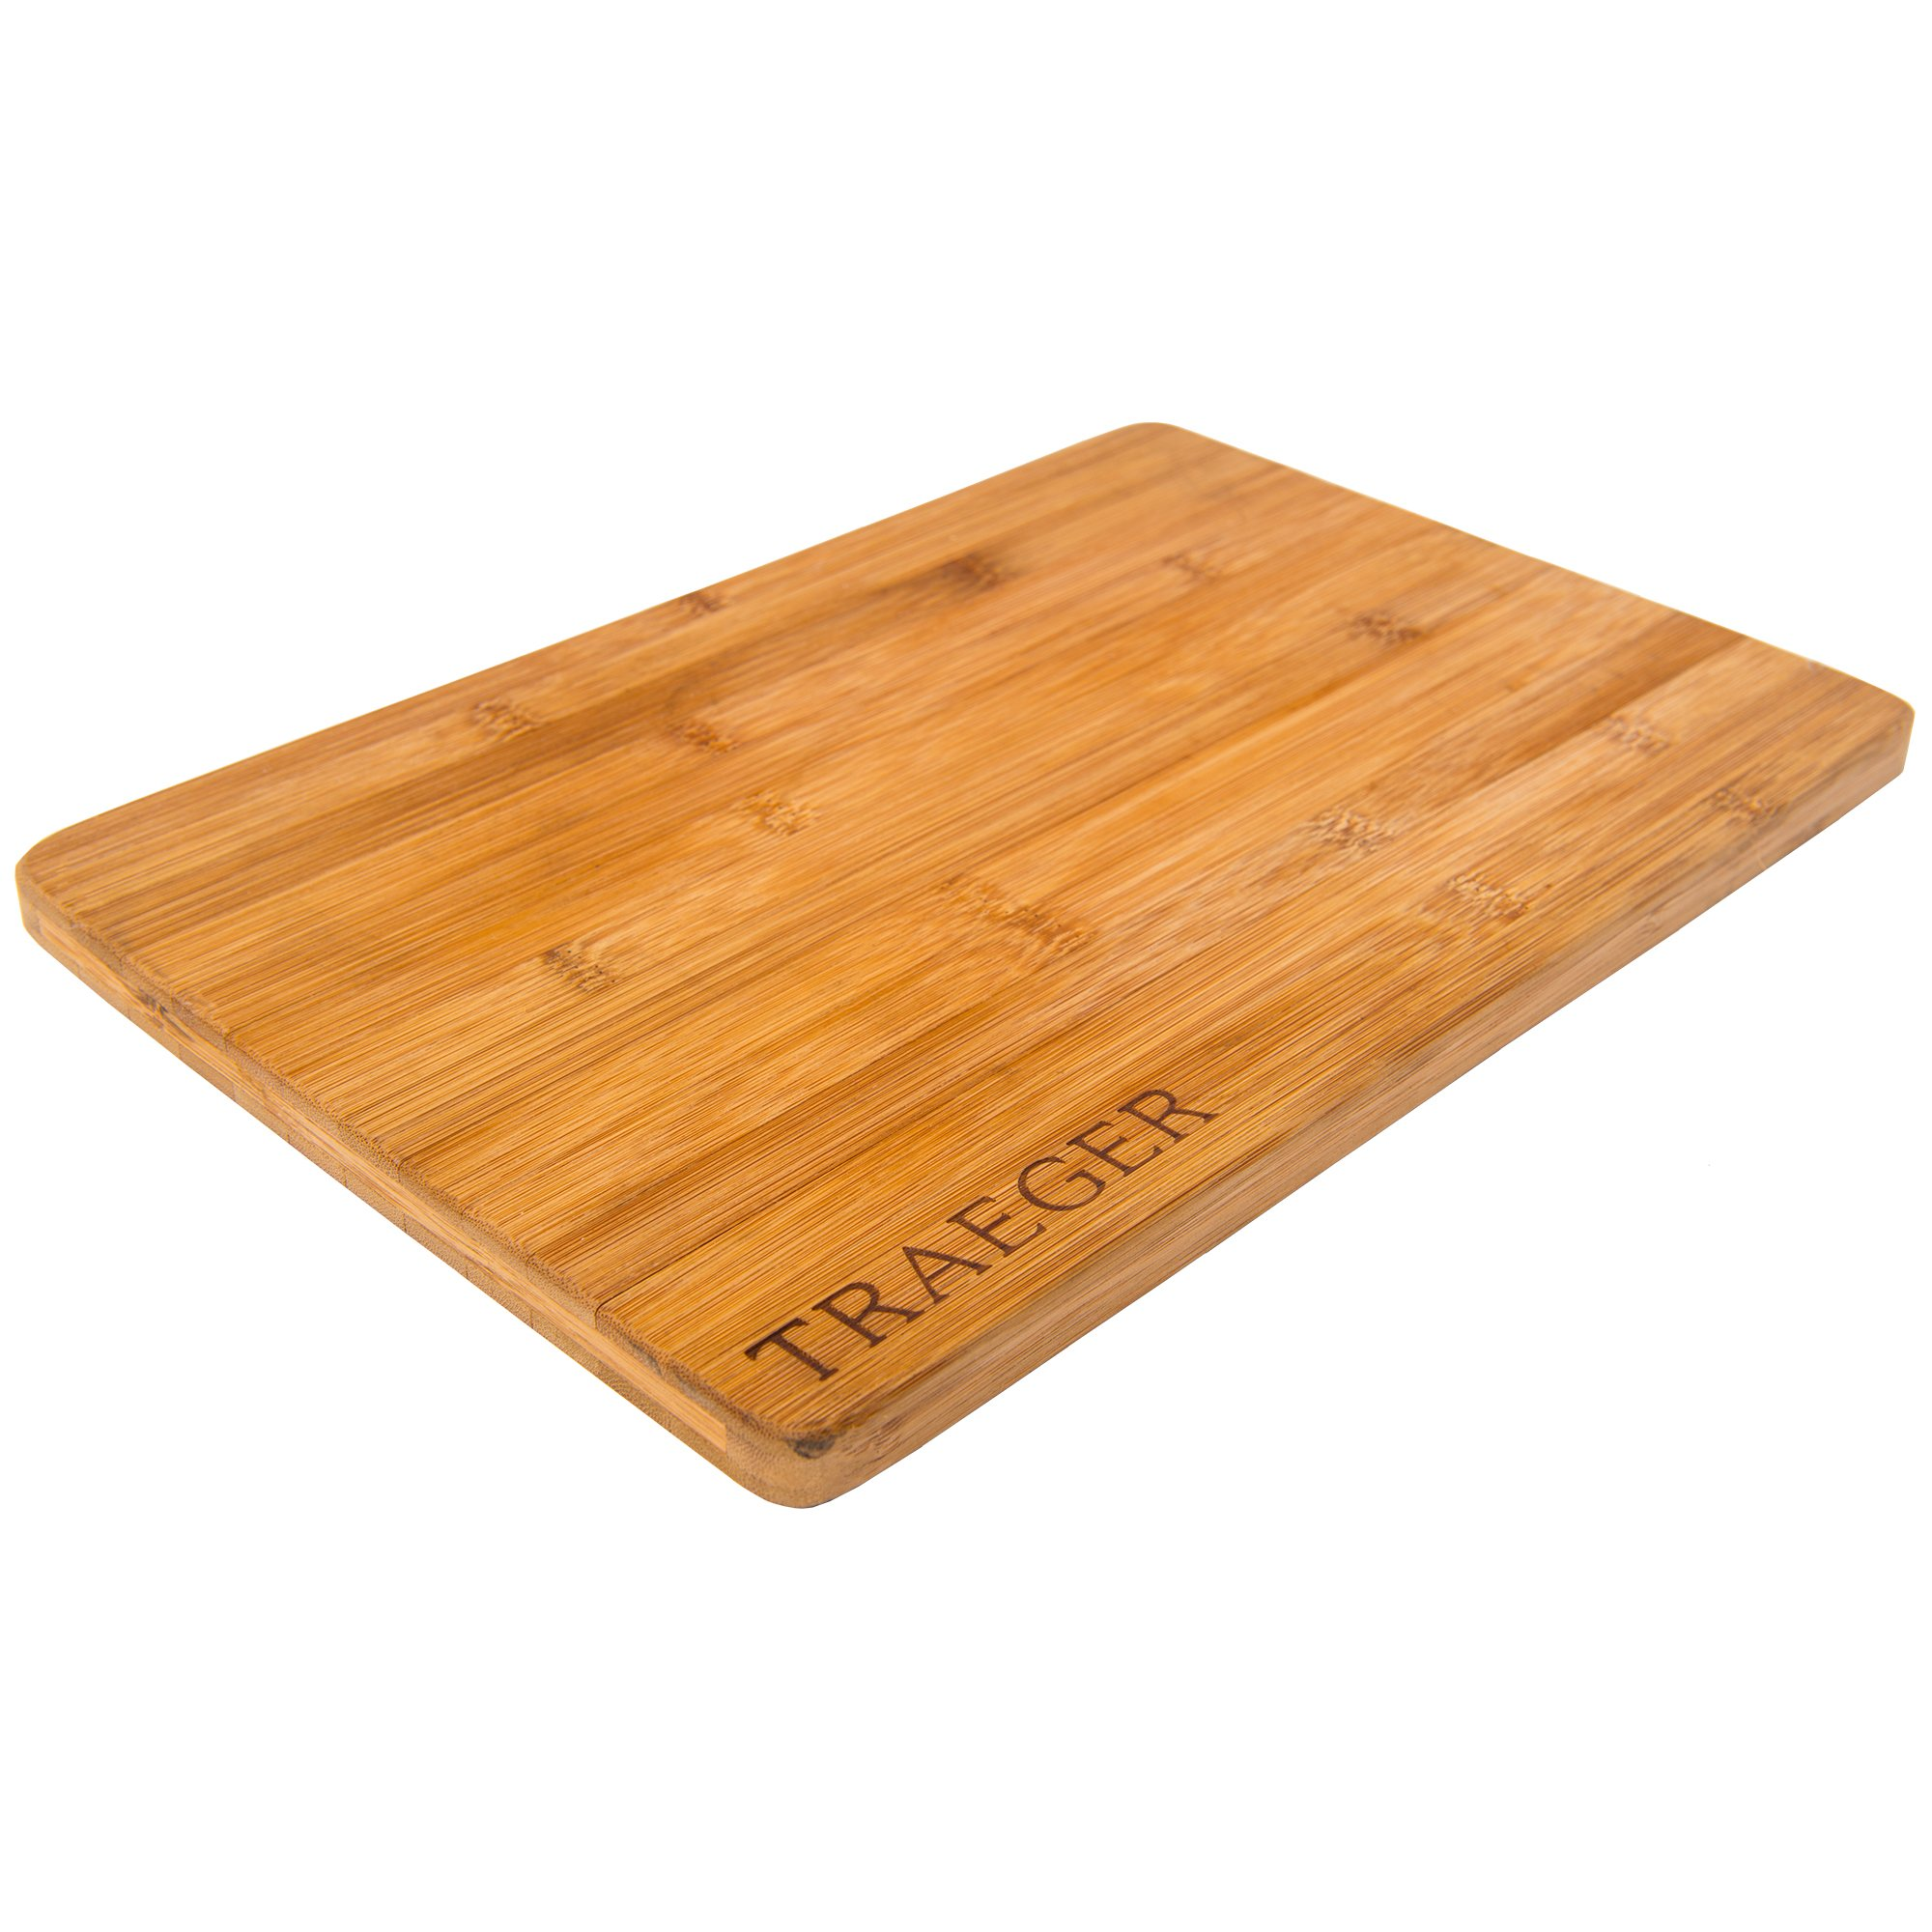 Traeger CCS Bamboo Cutting Board